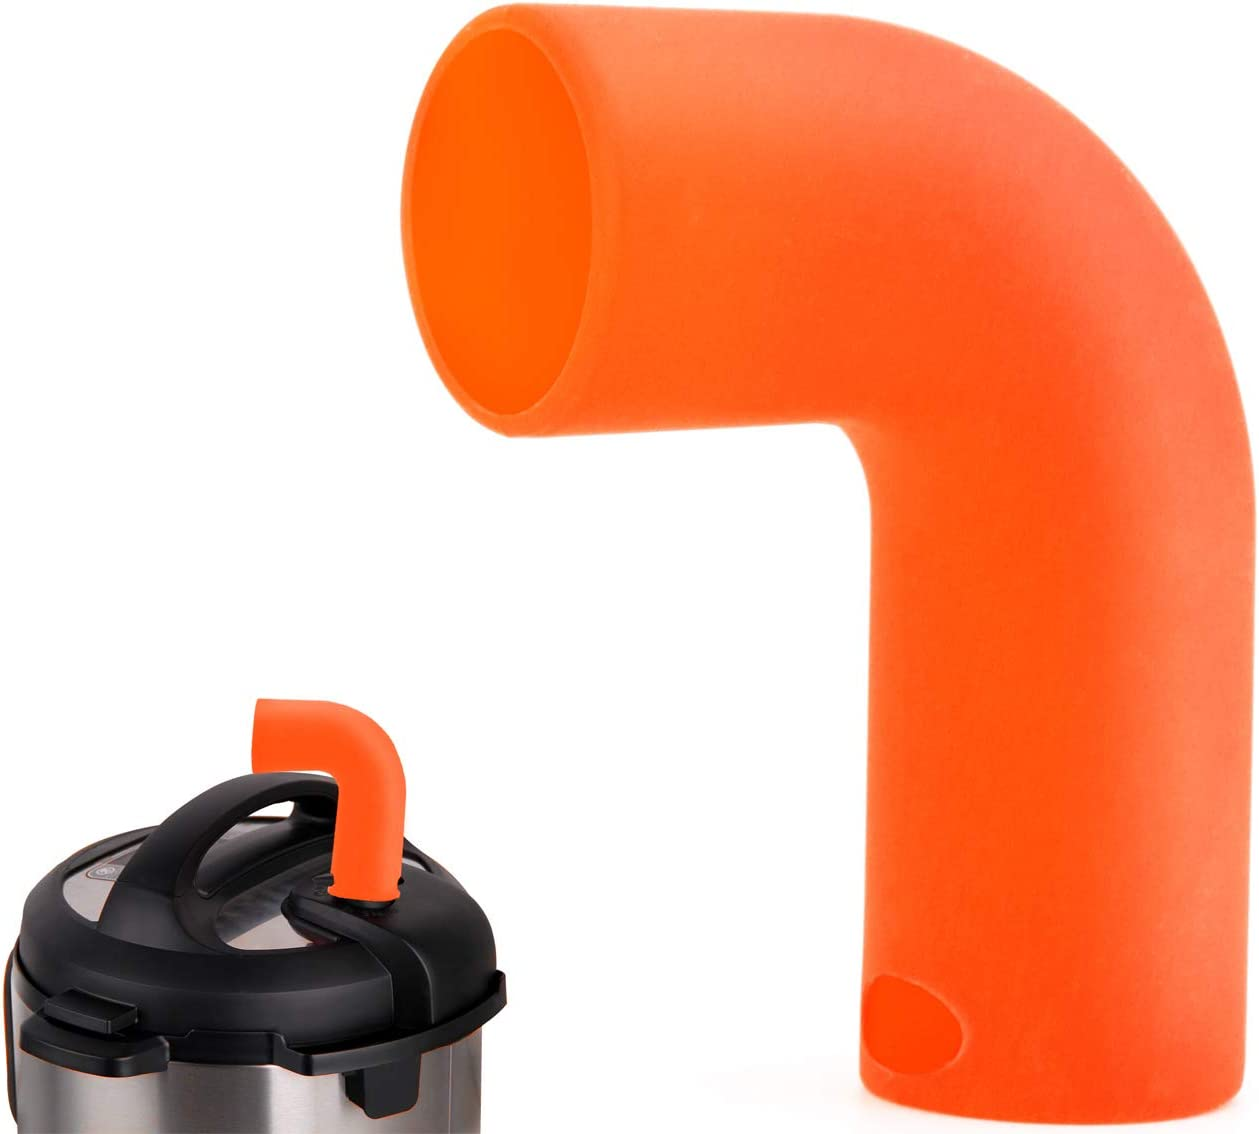 Steam Release Accessory Fits Instant pot 3, 5, 6, 8 Qt Duo & Smart Models Only, Made By High Grade Food Silicone,Helps Protect Cabinets-Orange